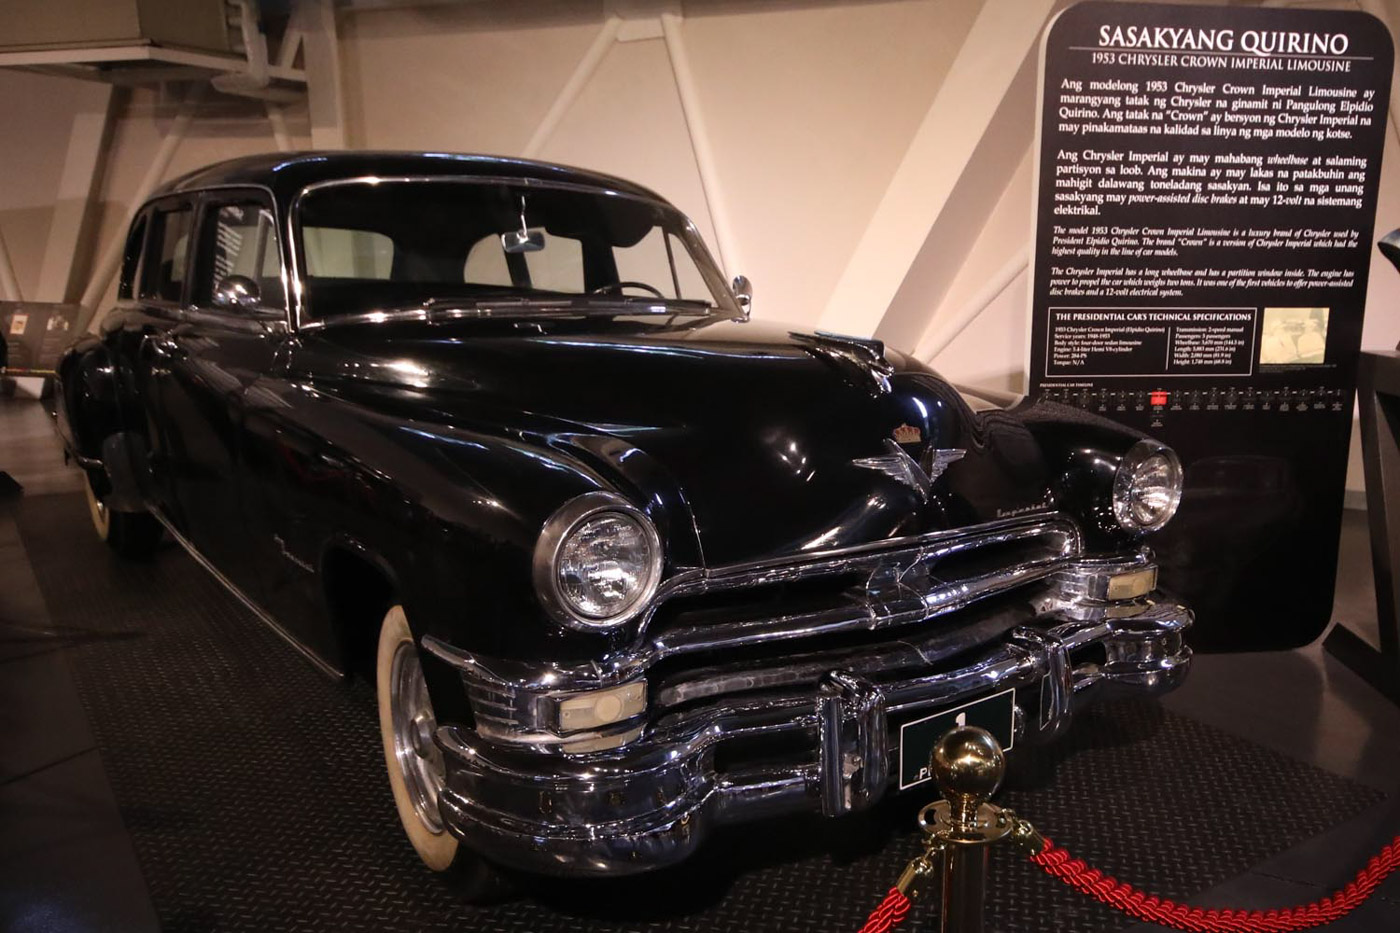 QUIRINO. The 1953 Chrysler Crown Imperial Limousine used by then president Elpidio Quirino on display. All photos by Darren Langit/Rappler